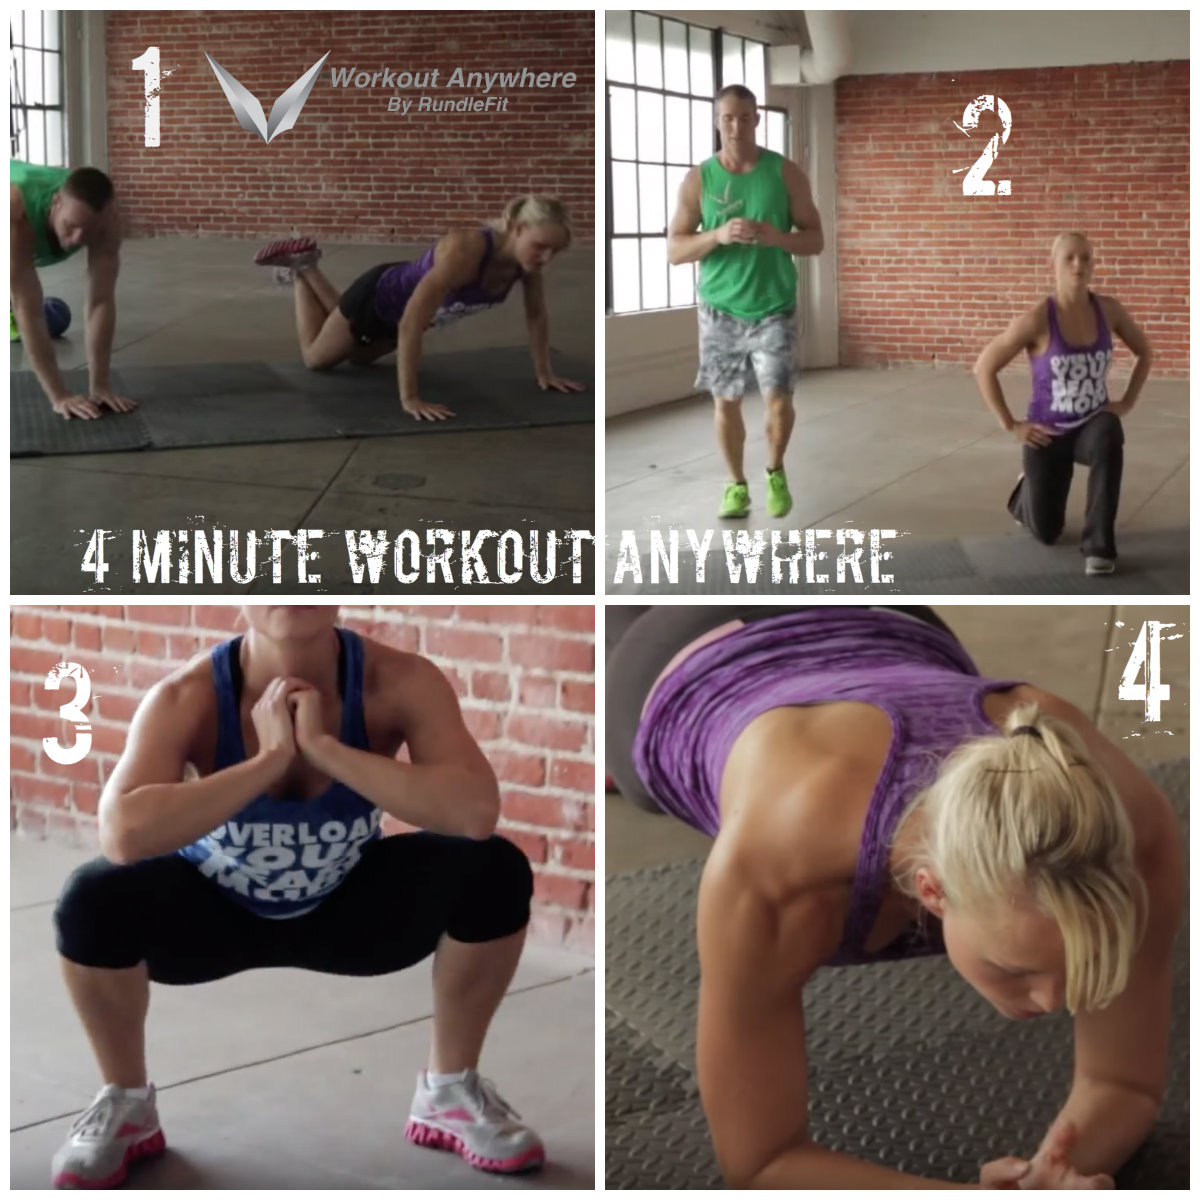 4 Minute Workout Anywhere